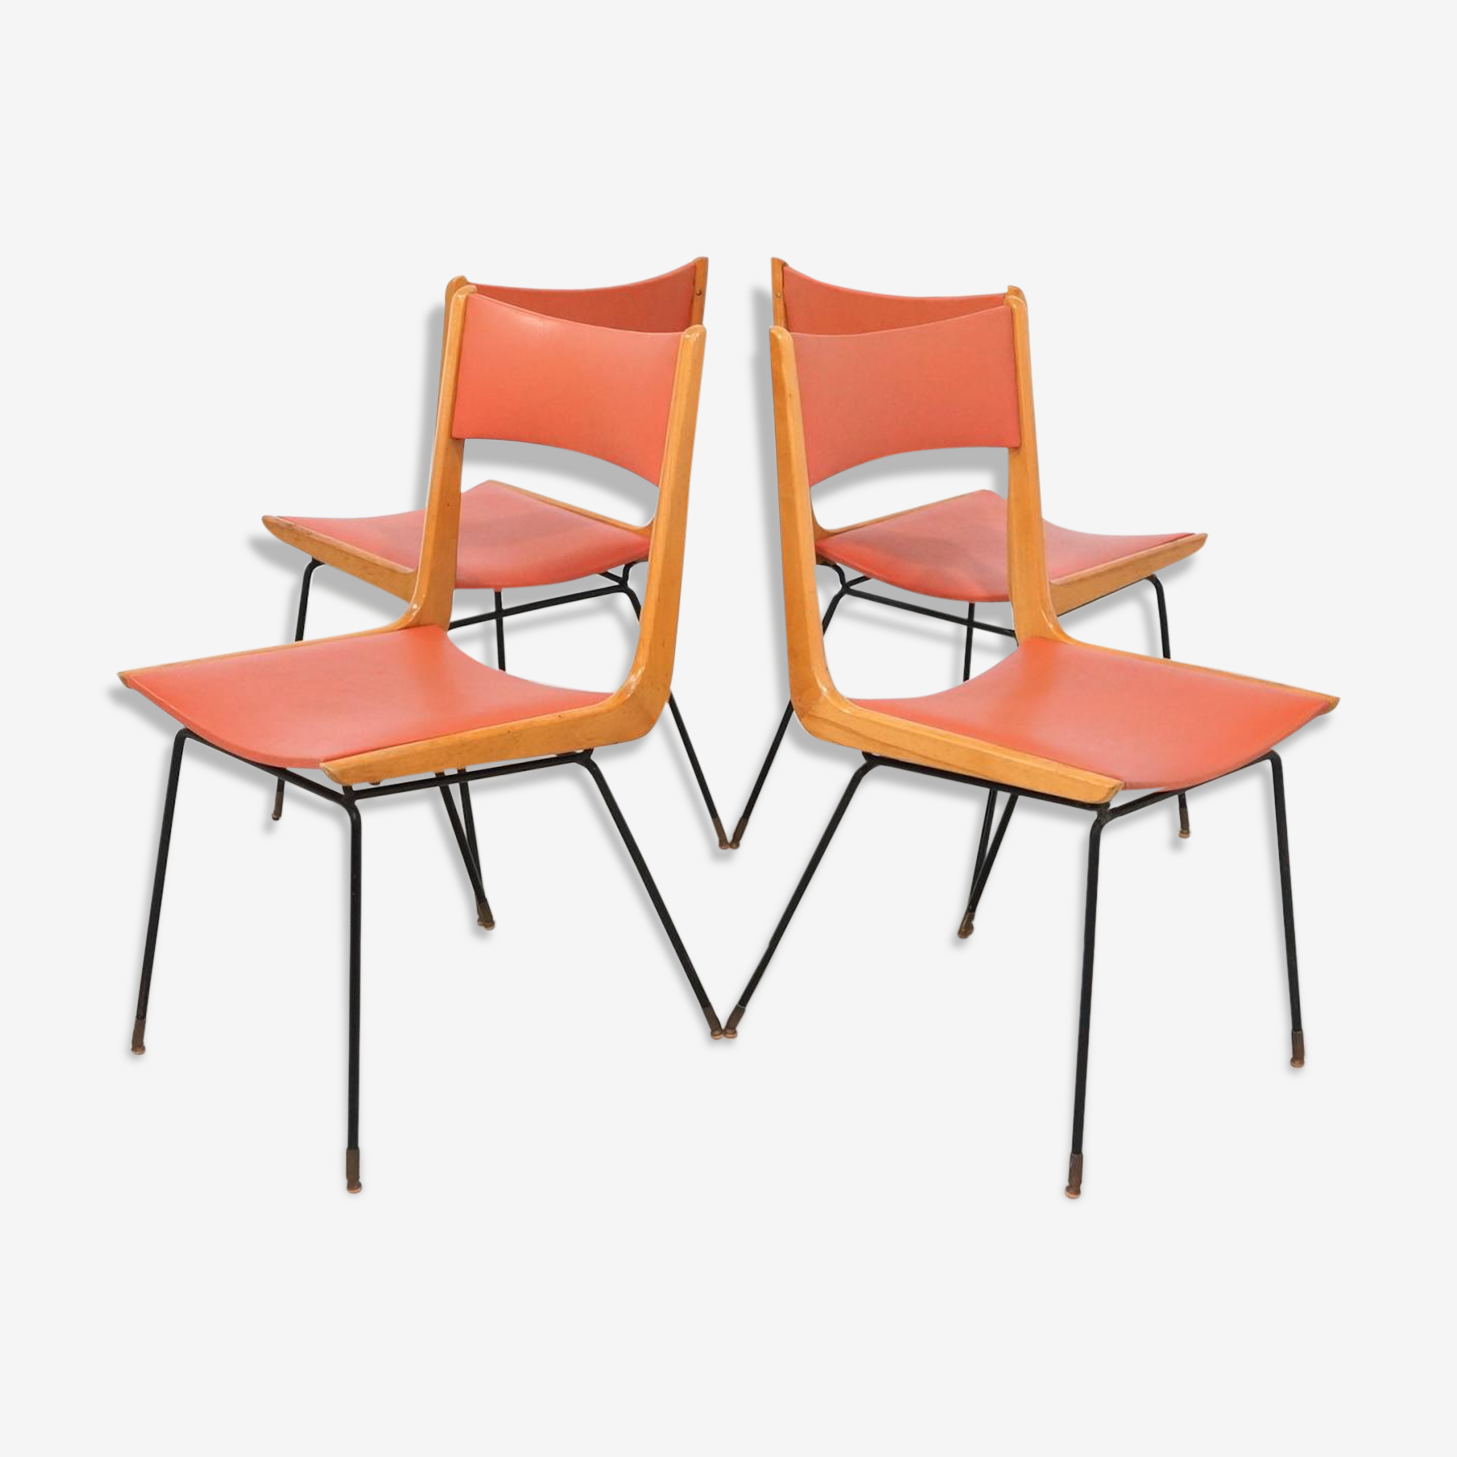 Set of 4 chairs boomerang by Carlo Ratti Italy 1950 s